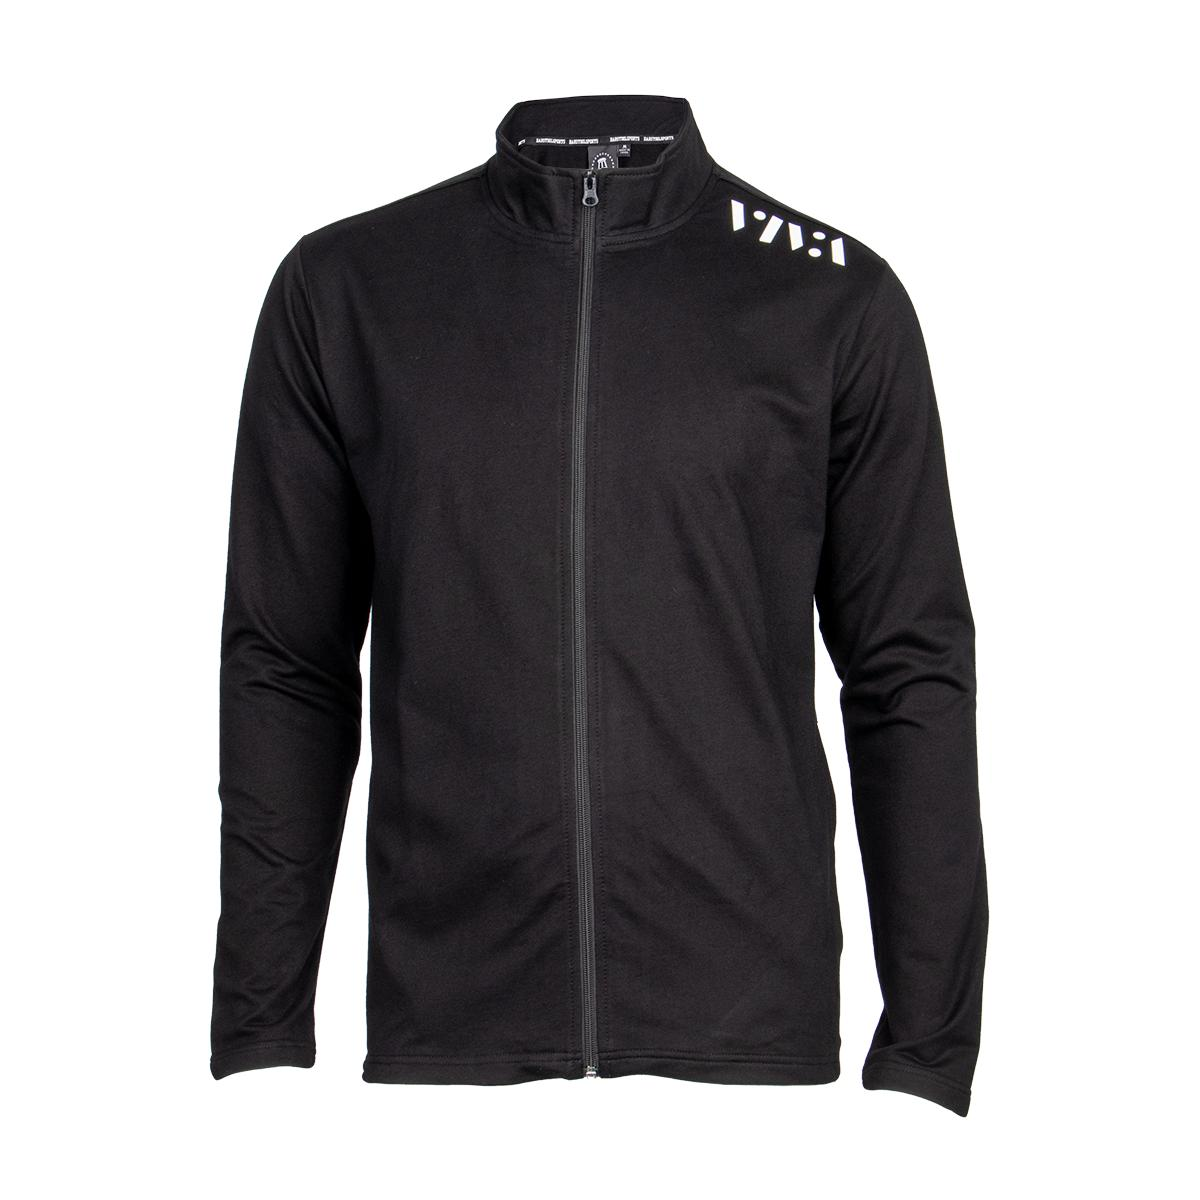 VIVA Zip Up Jacket